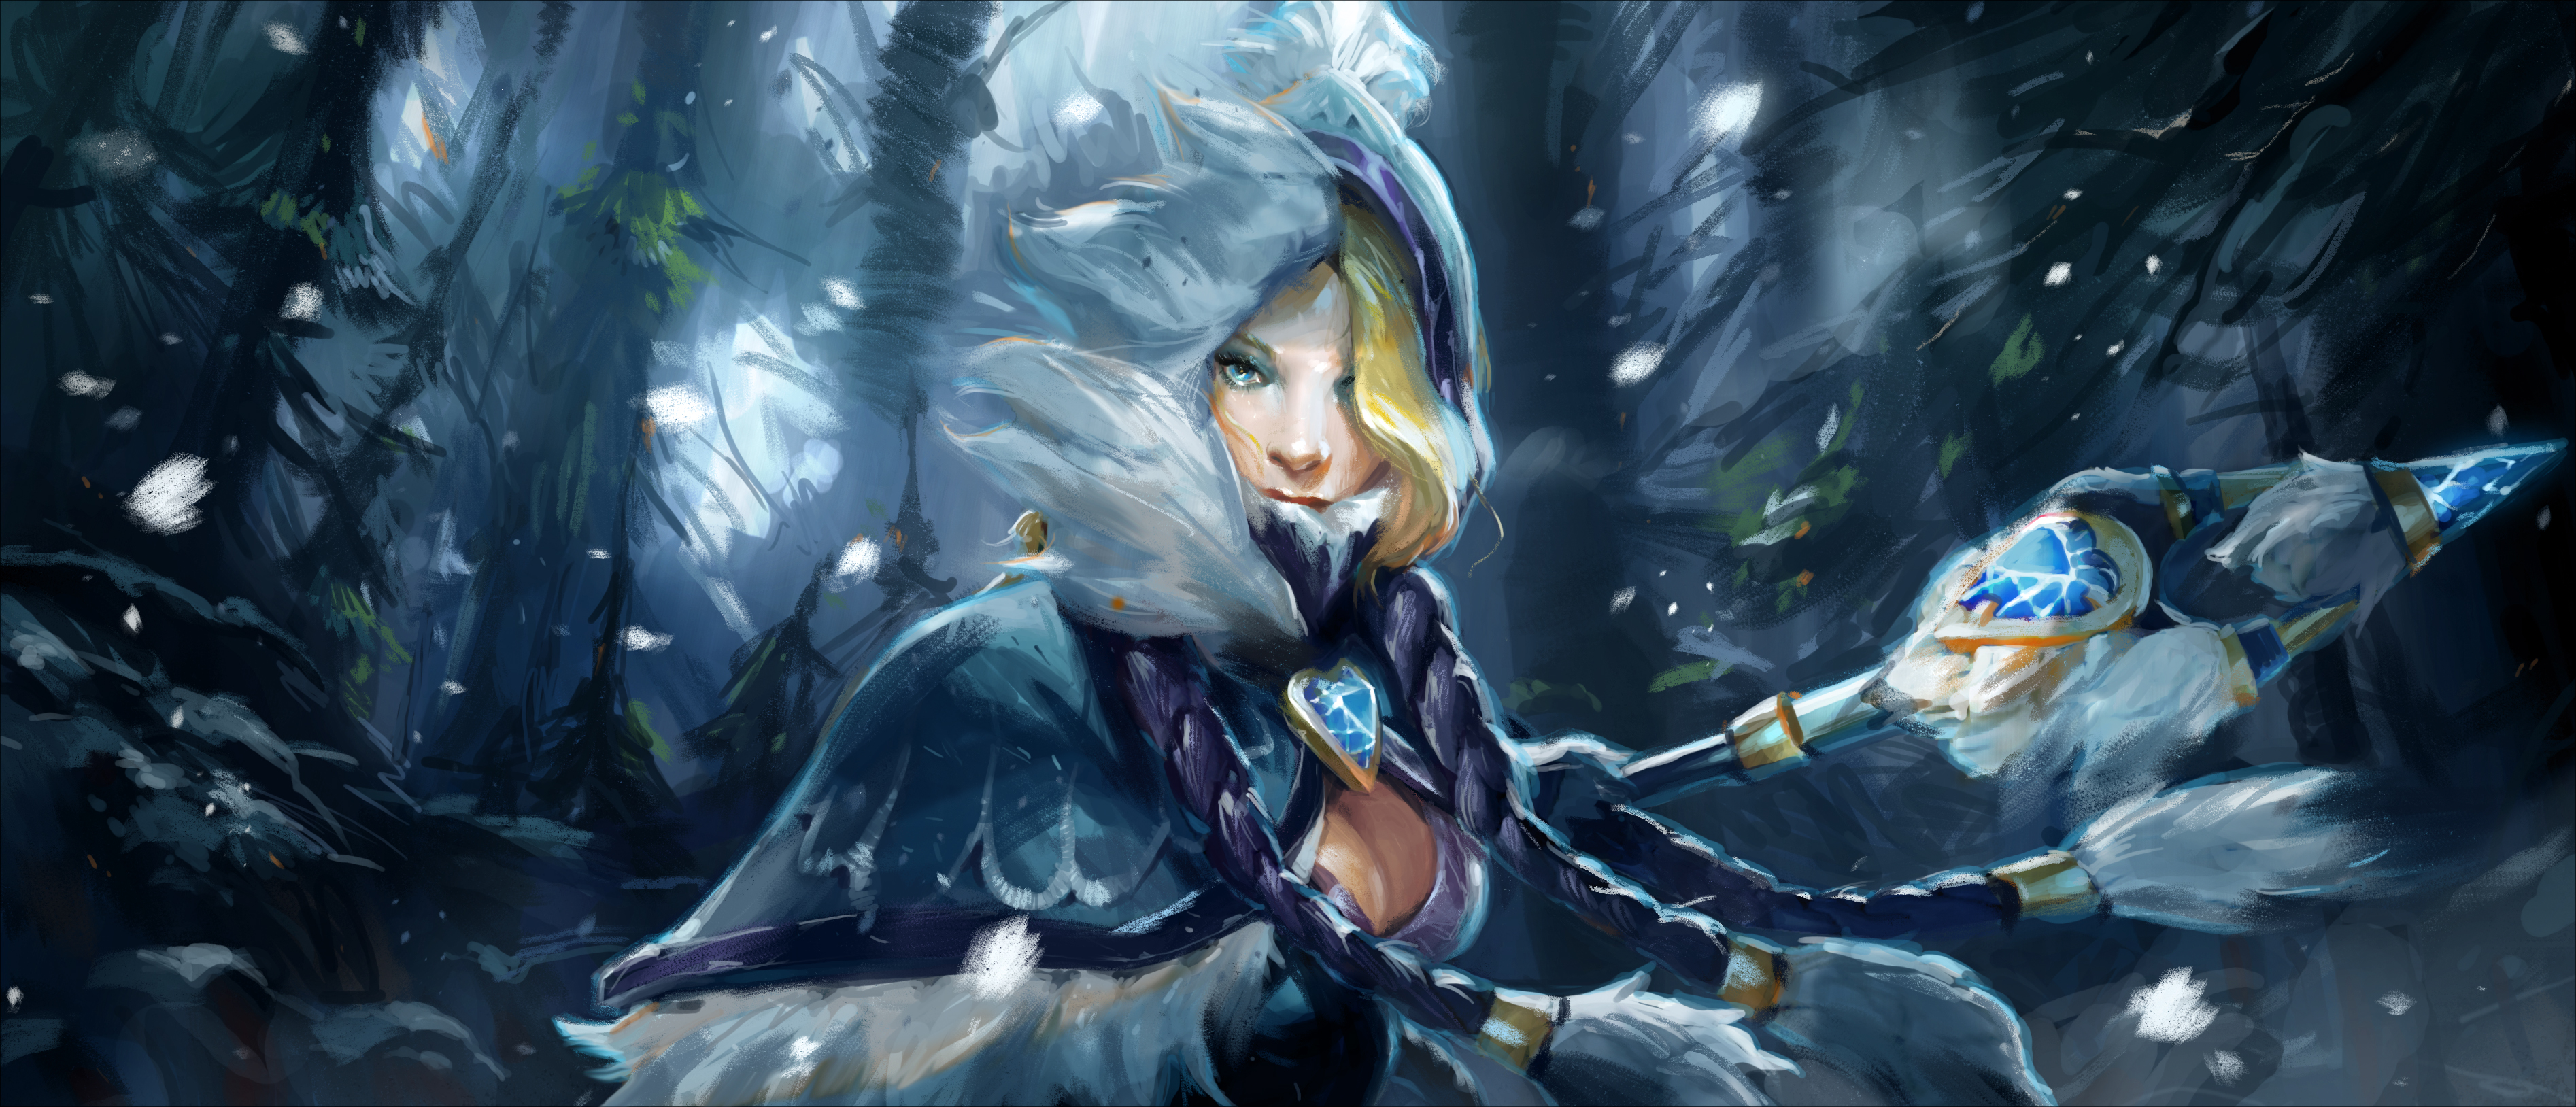 Anyone Can Make A Wallpaper Out Of The Frostivus Cm Banner Dota2